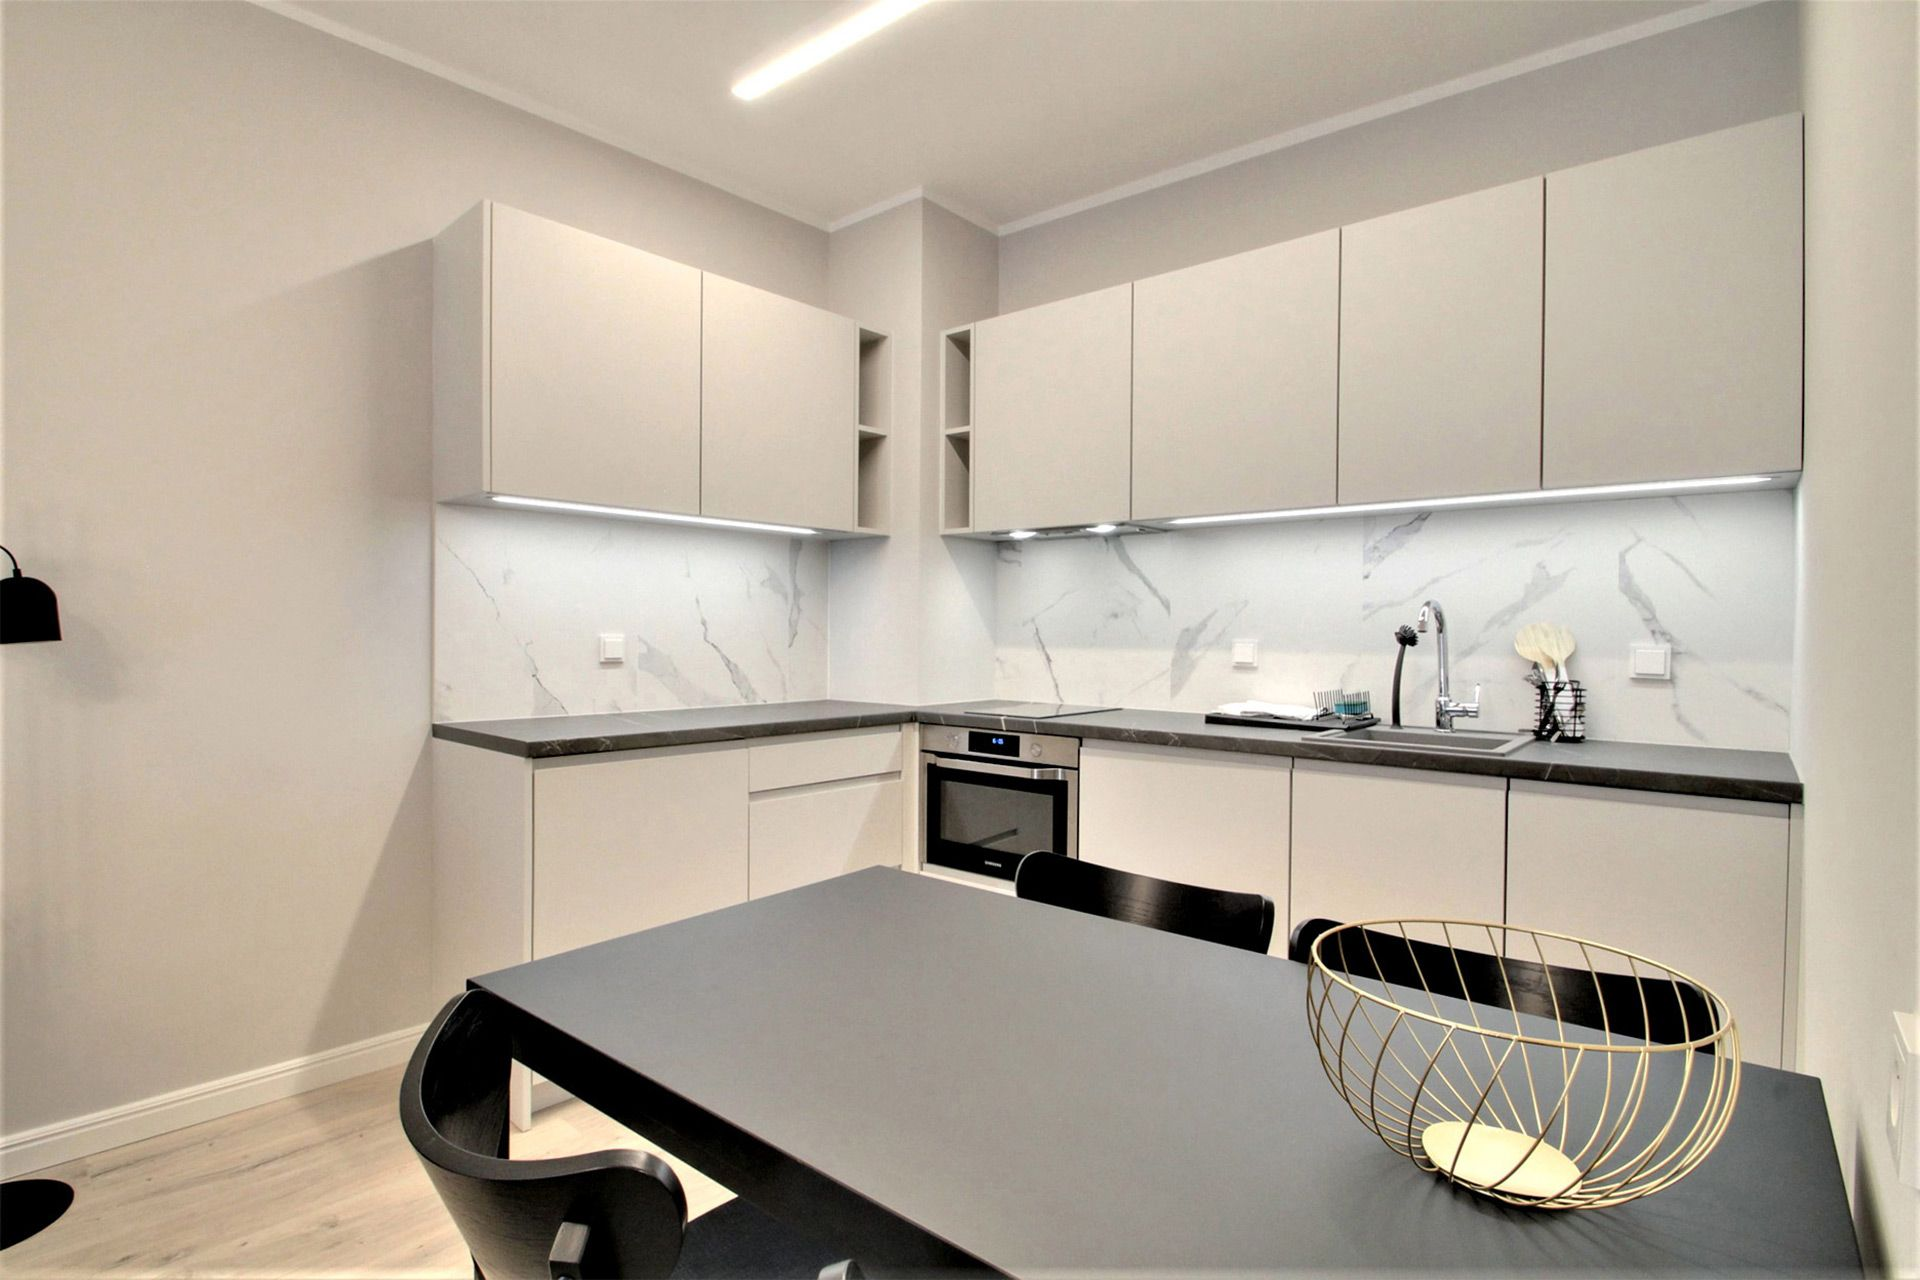 Studio - Medium apartment to rent in Warsaw UPR-A-051-2